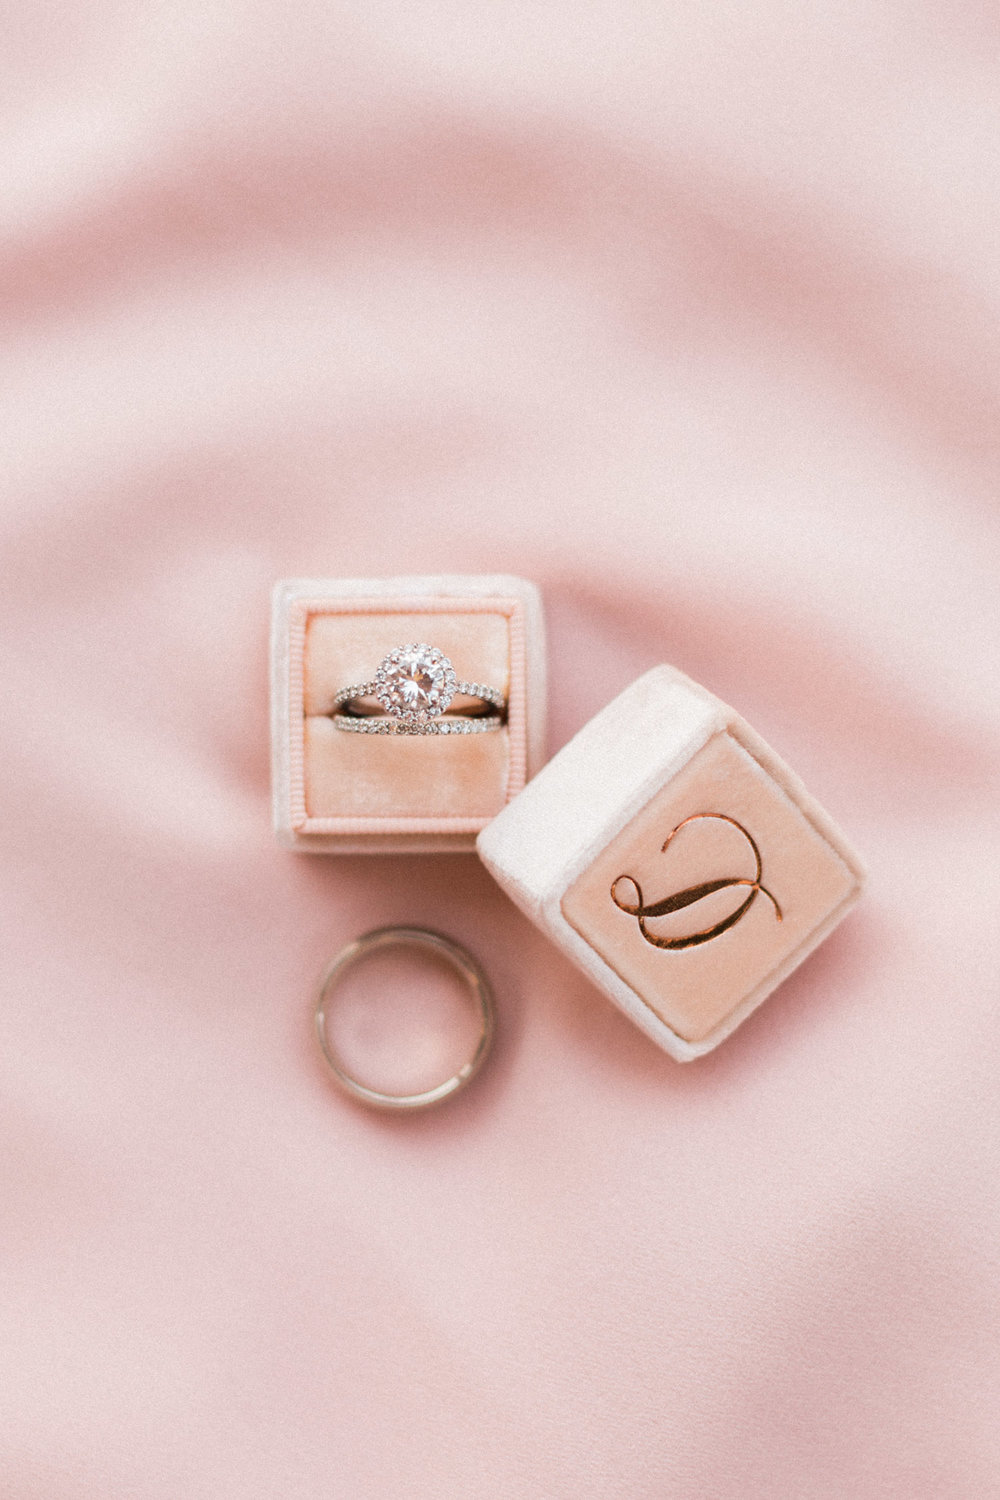 Stunning halo ring with a blush Mrs. Box and copper foil monogram